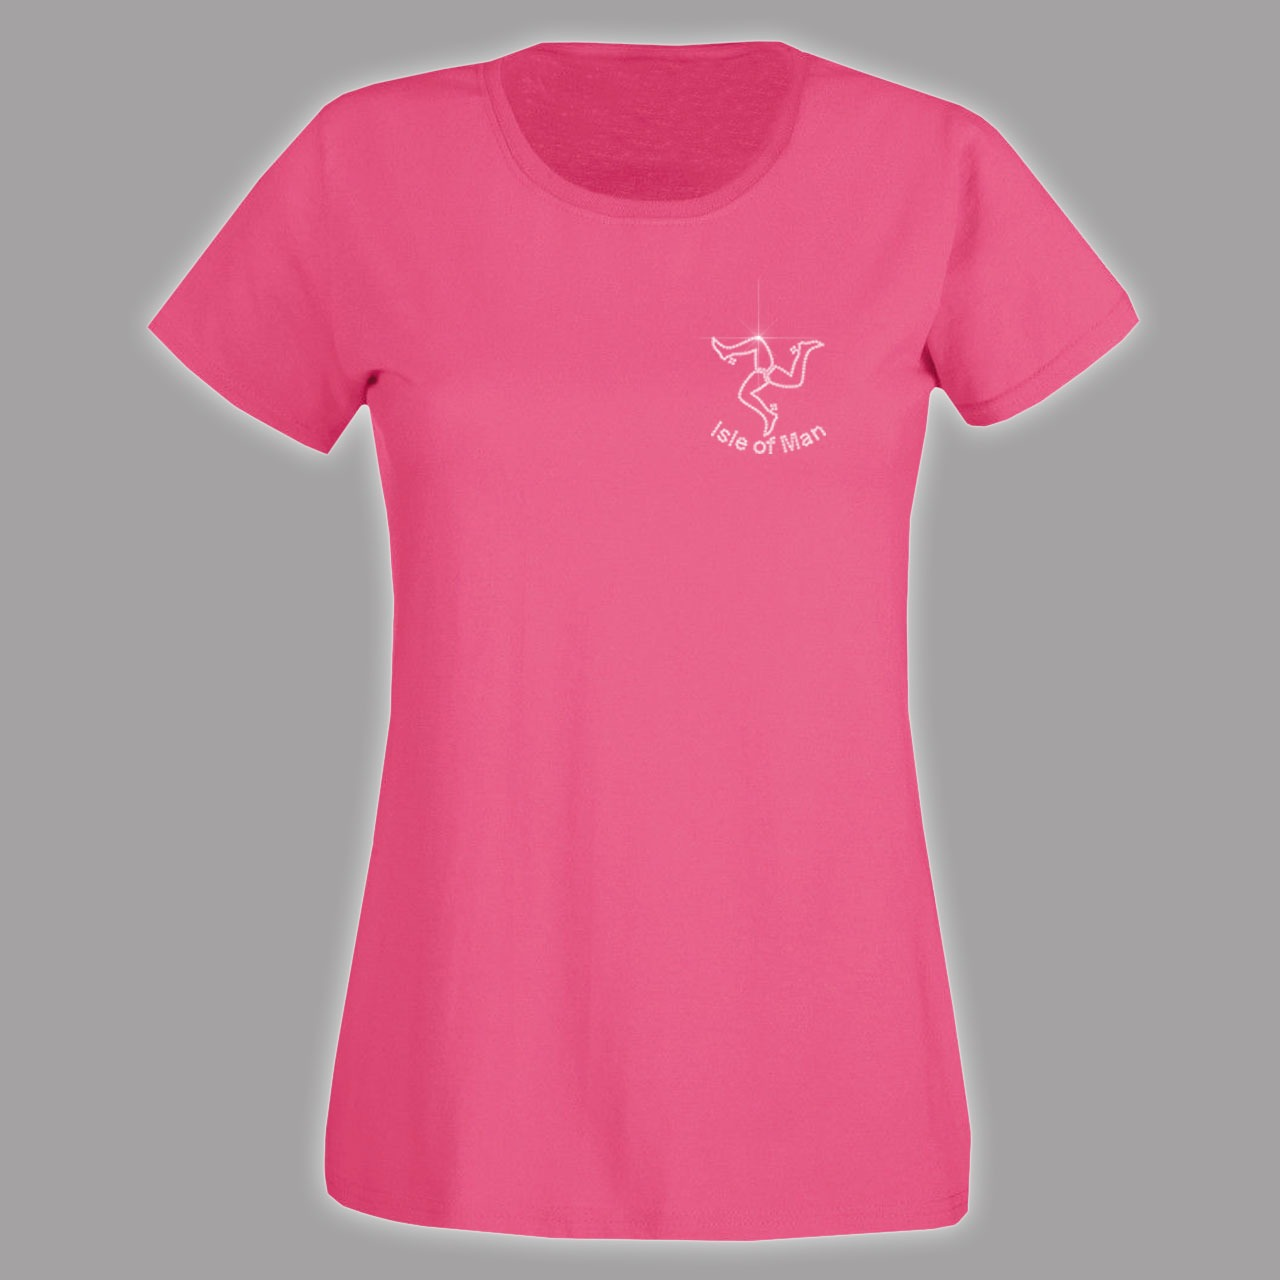 Hot pink ladies fitted t shirt mldt 240 diamante for Pink ladies tee shirts